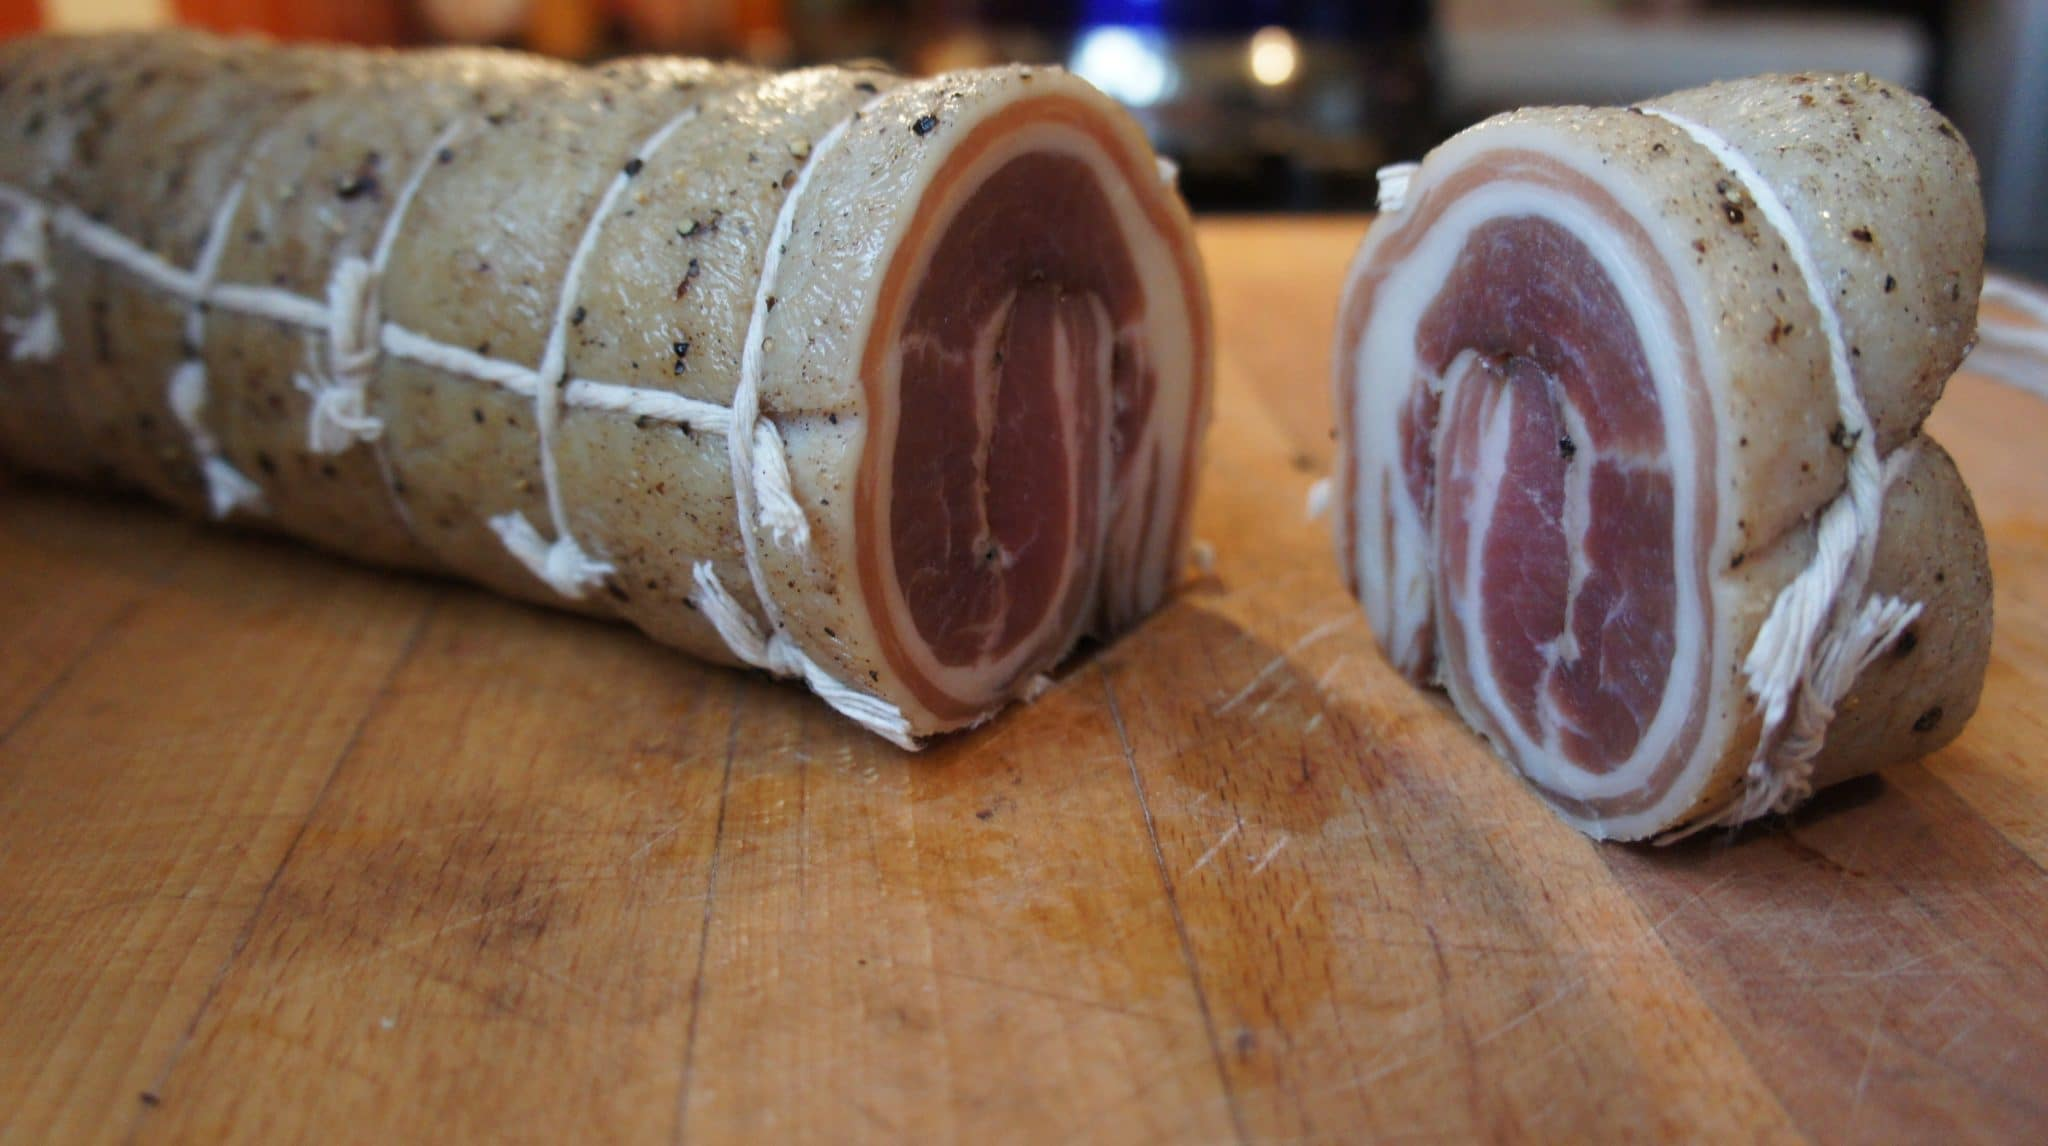 cured sausage recipes, making cured sausage